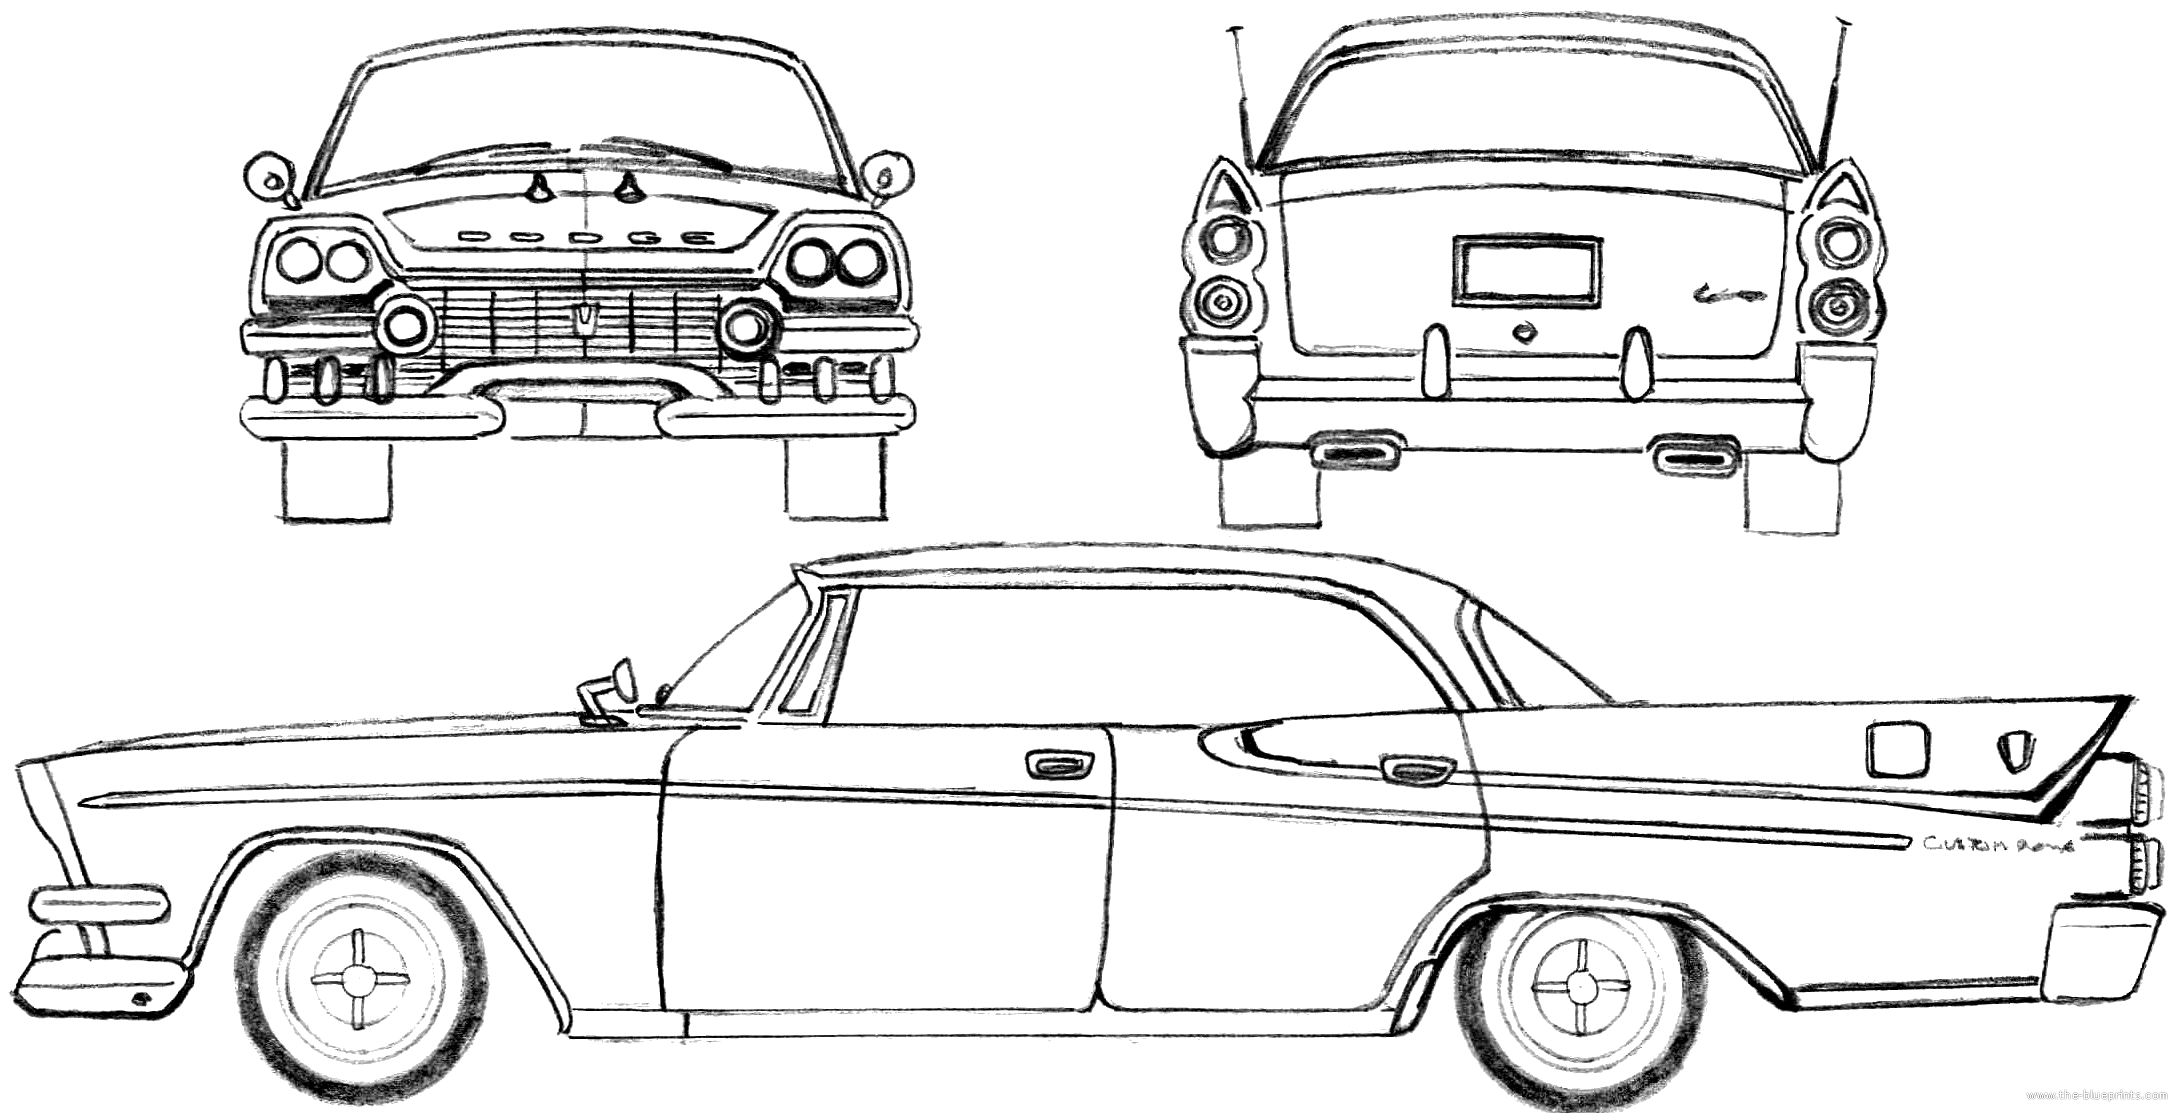 Front Suspension Diagram moreover 1972 Chevy Truck Steering Column Diagram together with 1952 Buick Harness Diagram additionally 1964 Buick Skylark Fuse Box Diagram in addition Dodge Custom Royal Lancer. on 1955 buick riviera parts